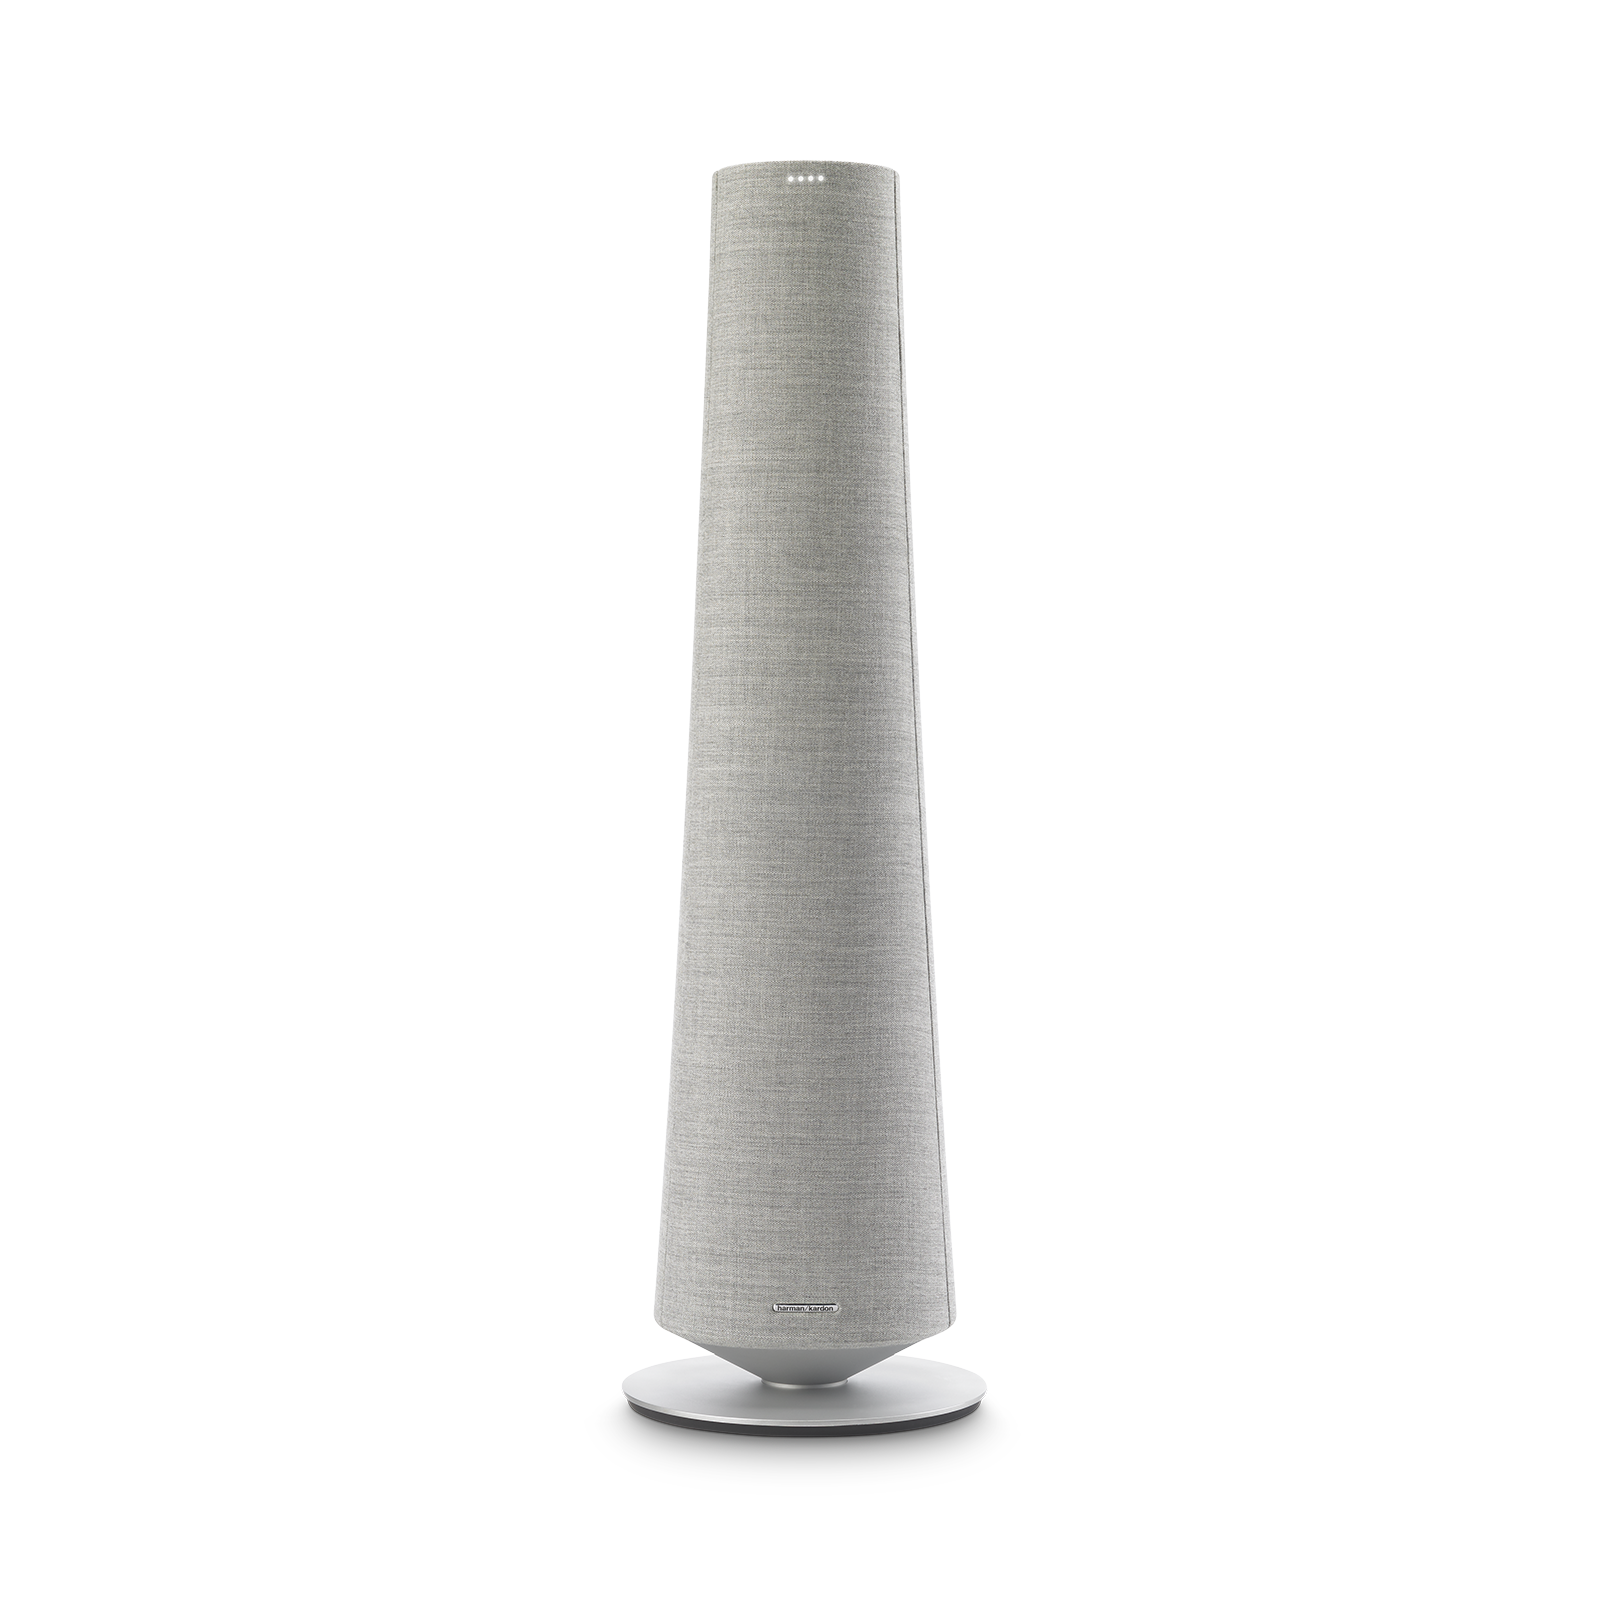 Harman Kardon Citation Tower - Grey - Smart Premium Floorstanding Speaker that delivers an impactful performance - Front